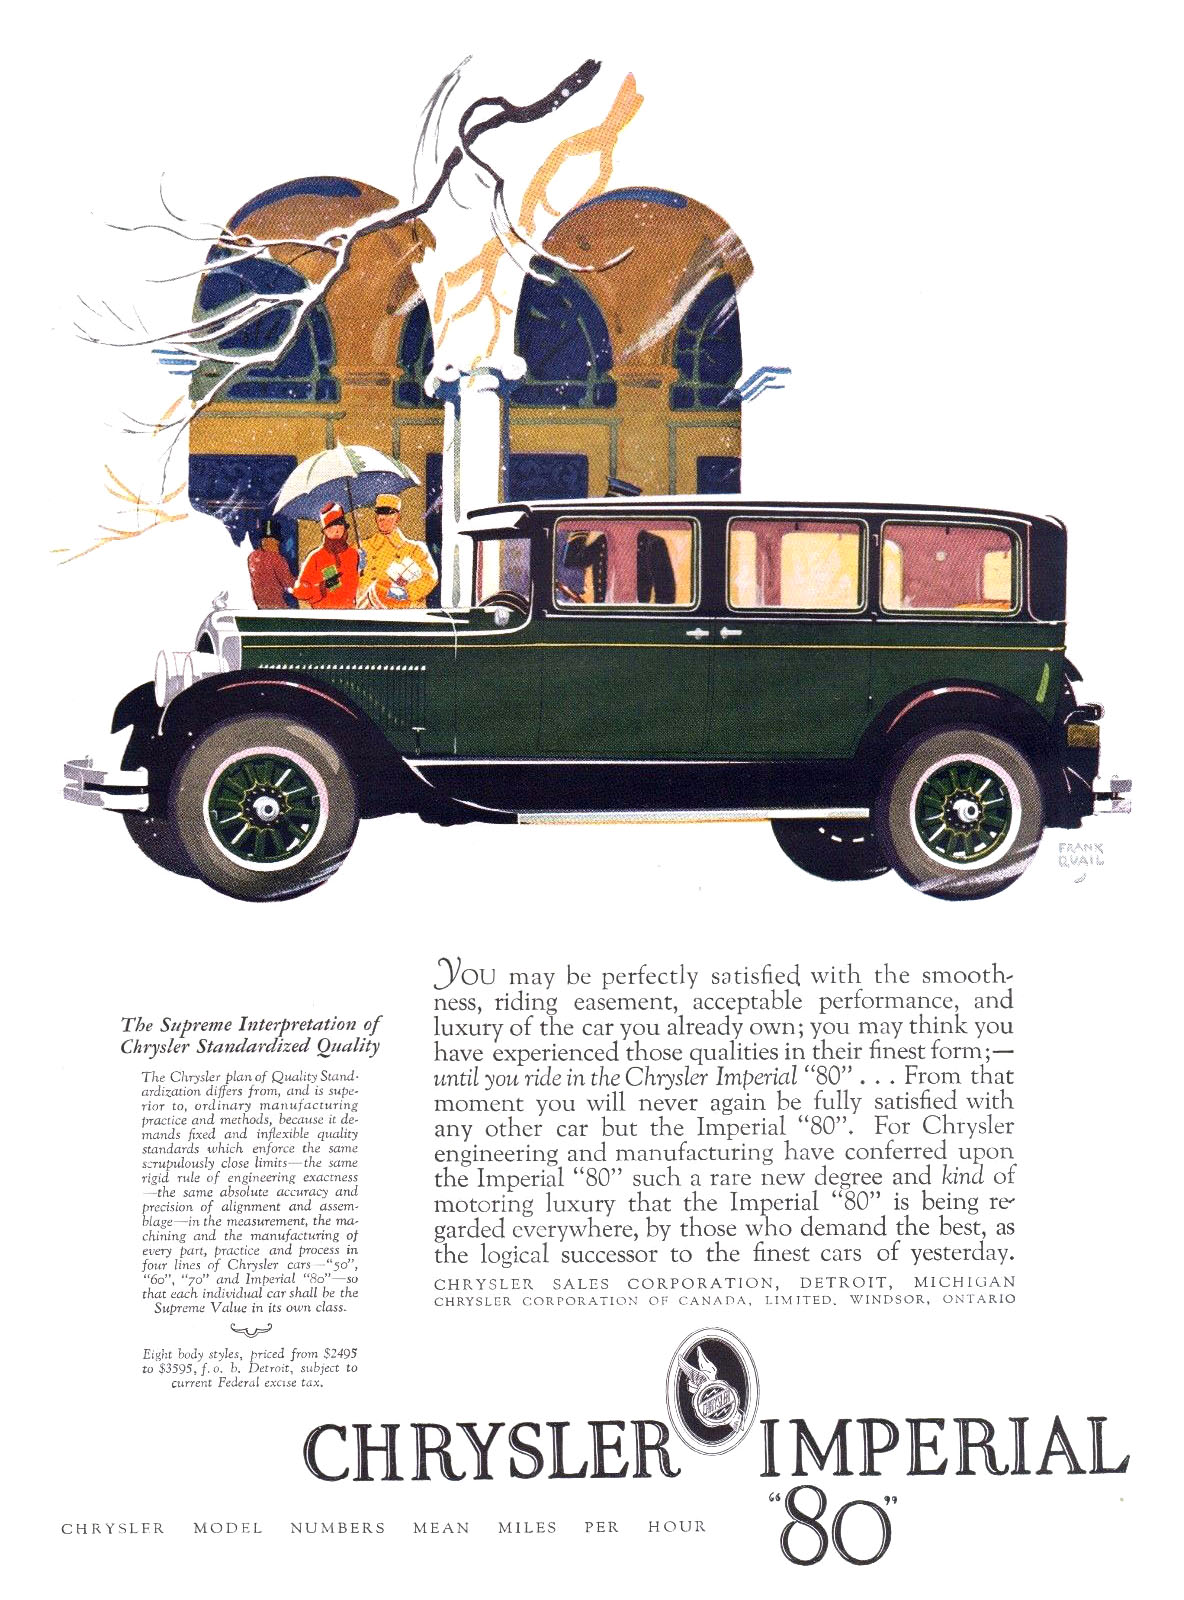 1927-chrysler-imperial-80-4-door-sedan-ad-by-frank-quail